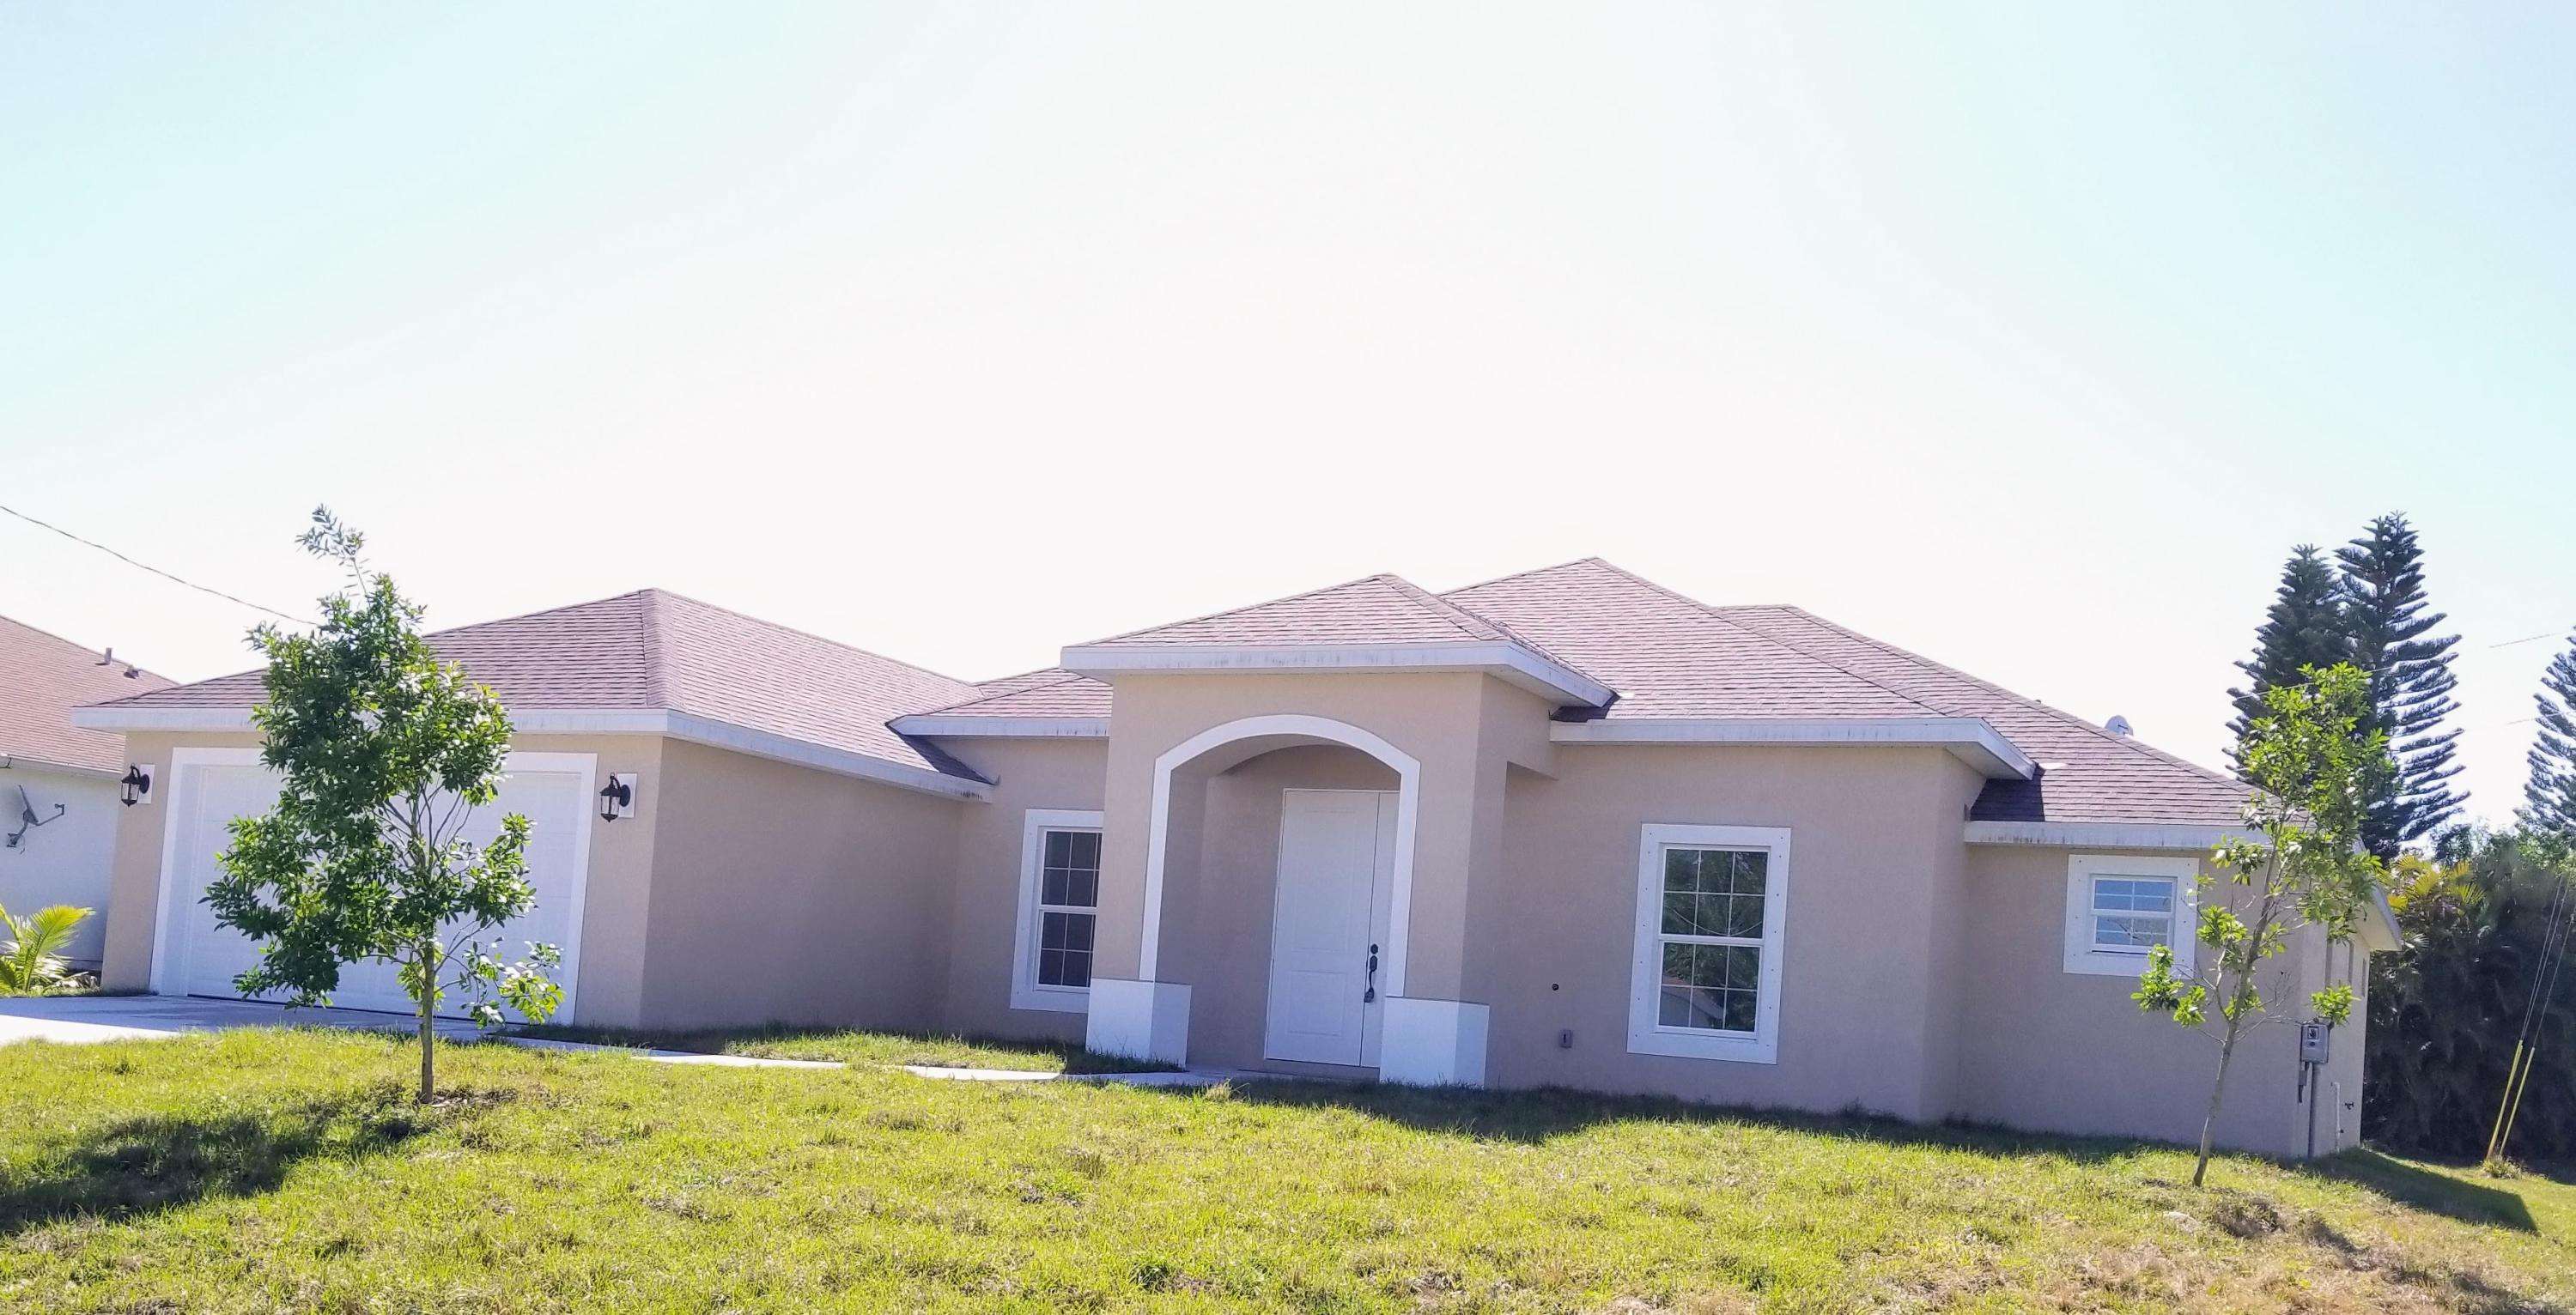 468 Nome Drive, Port Saint Lucie, Florida 34984, 3 Bedrooms Bedrooms, ,3 BathroomsBathrooms,Single Family,For Sale,Nome,RX-10503471